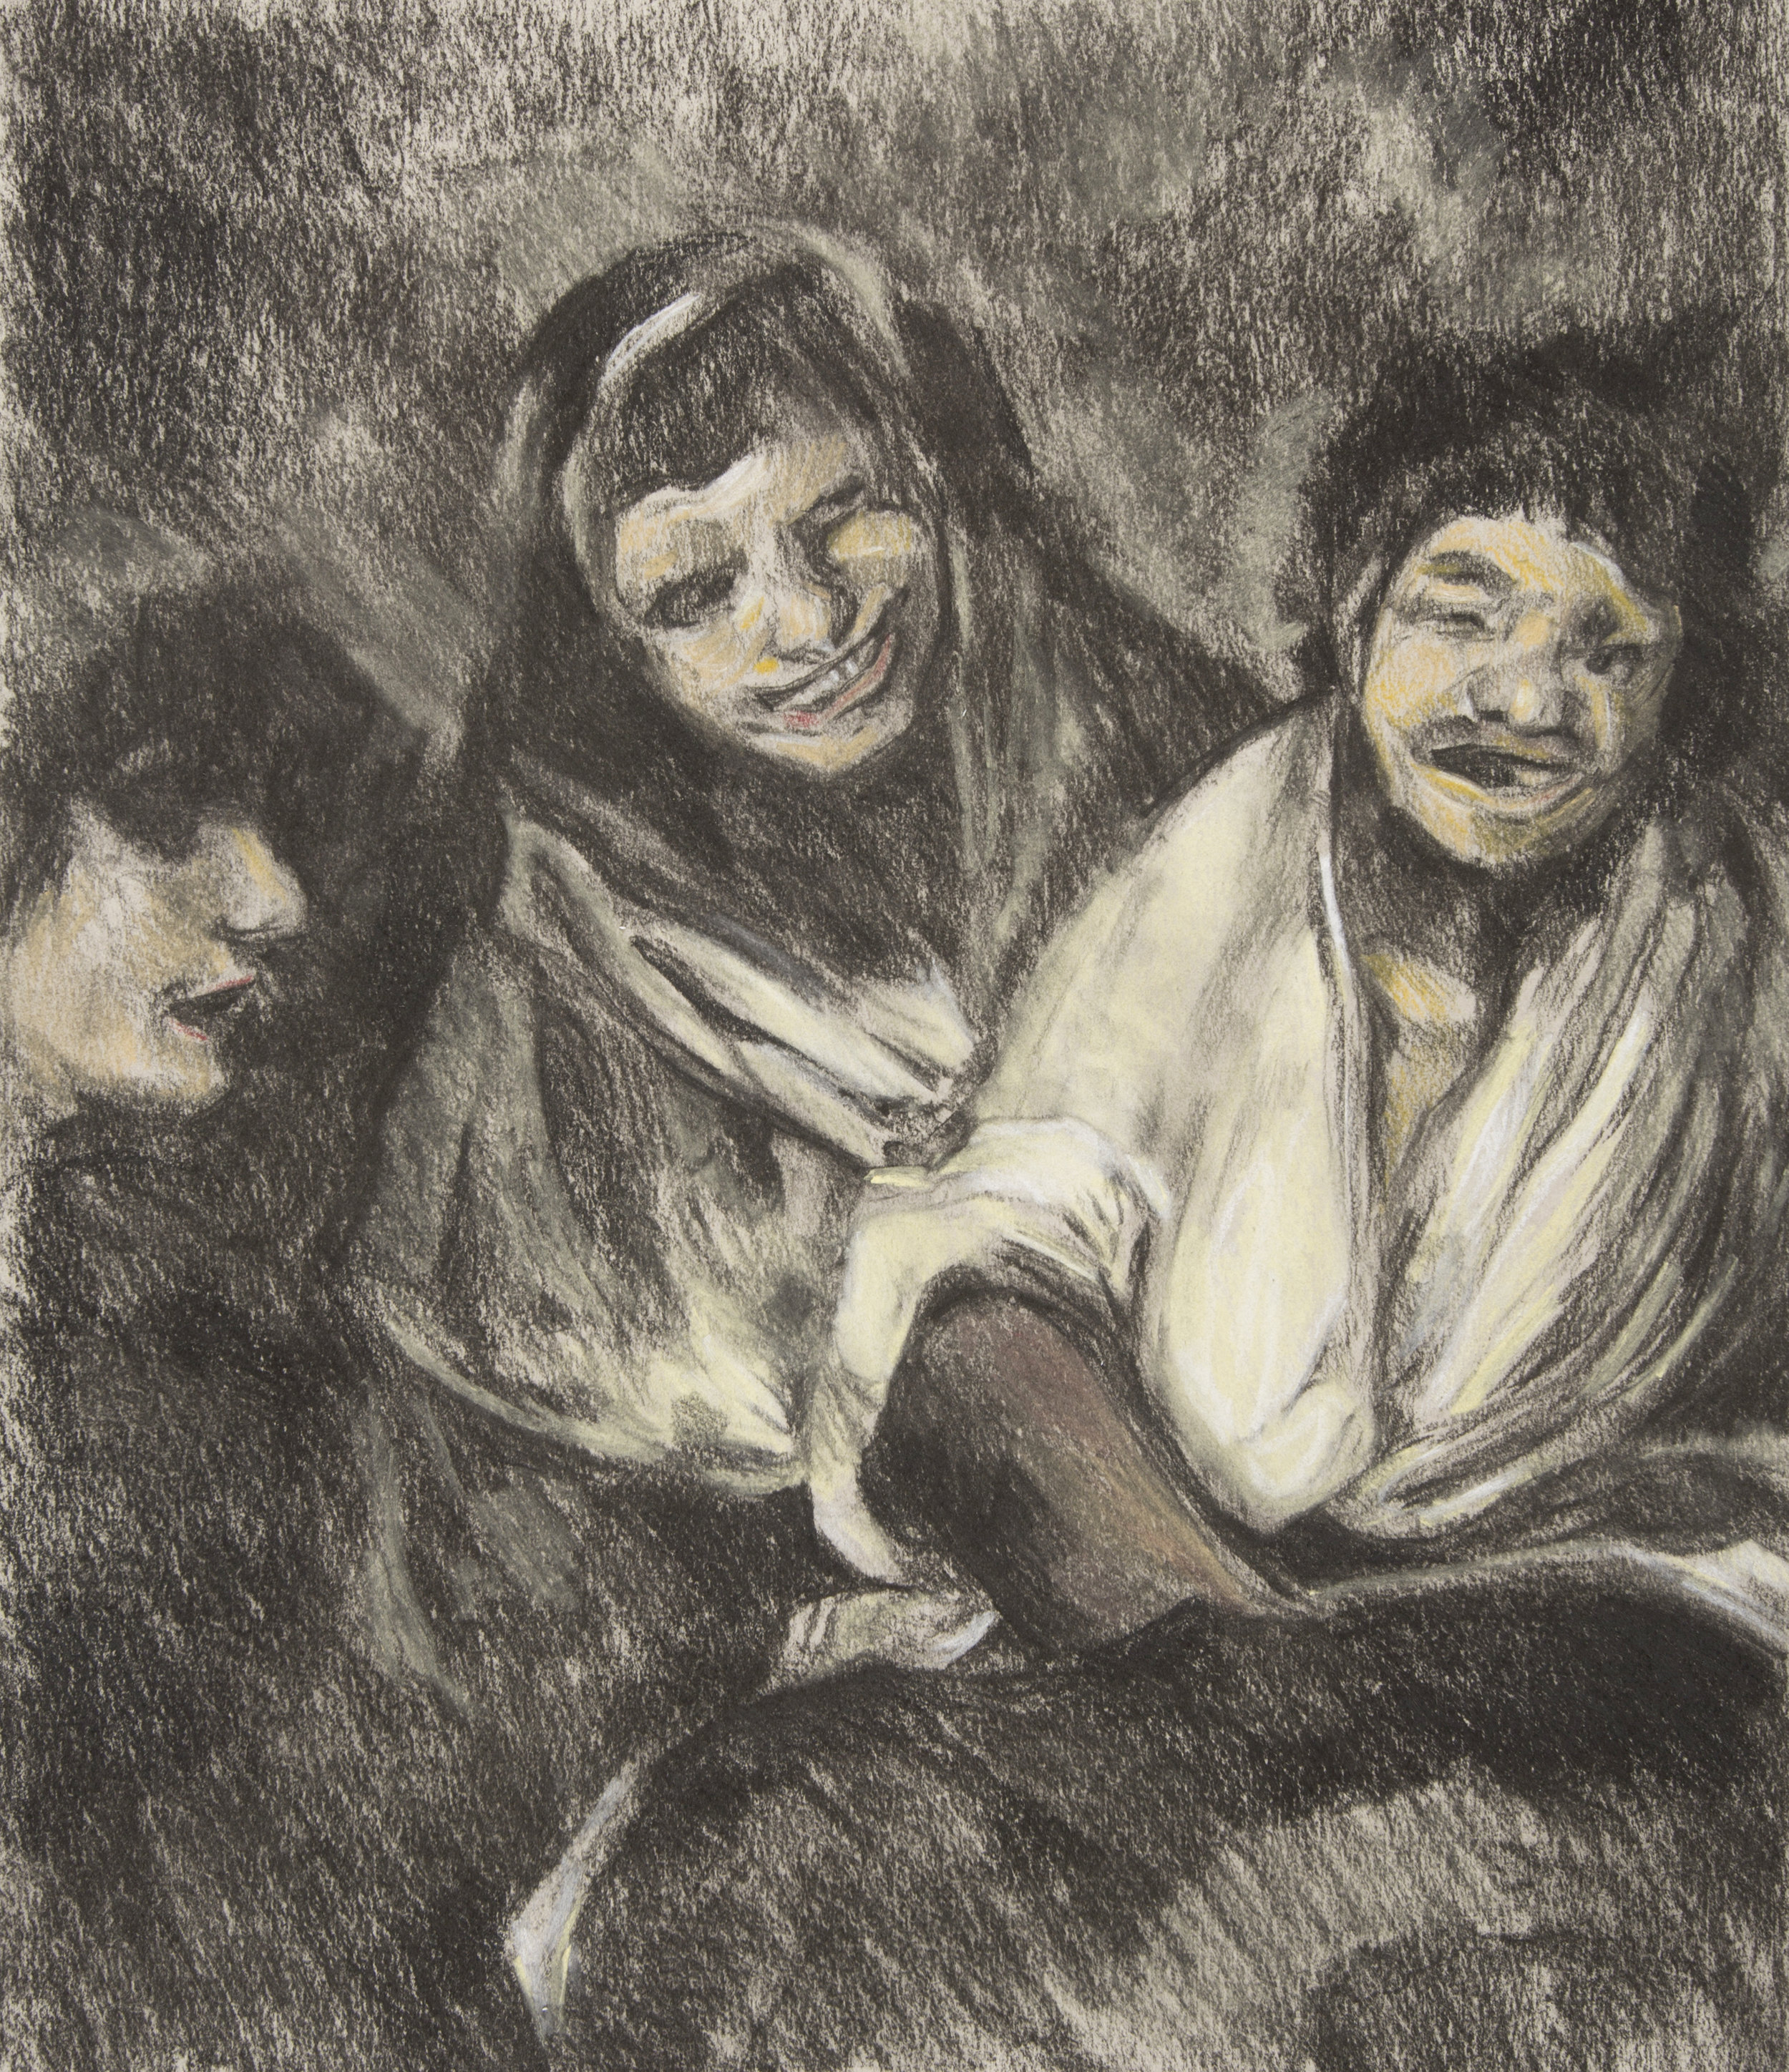 After Goya 'Two Women and a Man' (1820-23)  charcoal and pastel drawing on paper